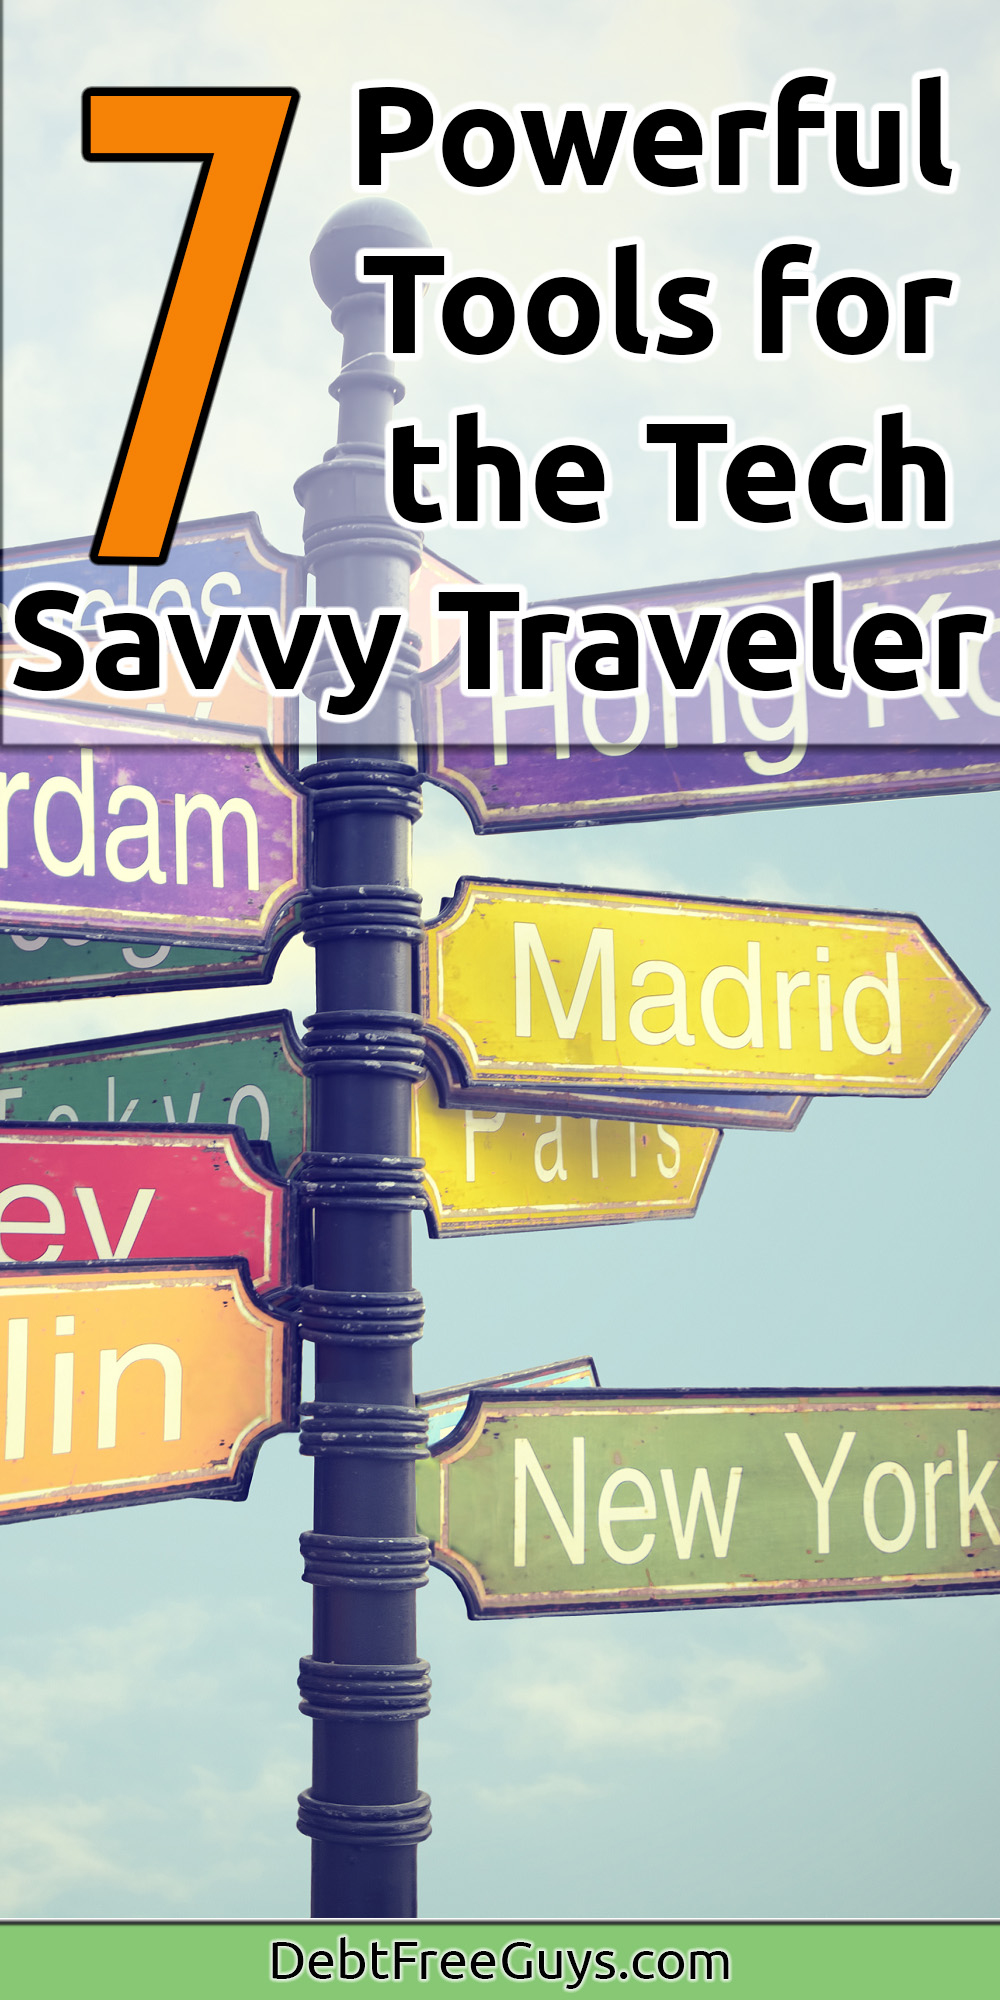 I love to travel, but I hate to spend more money than I need to travel. That's why this list of tech-savvy travel tips rocks. Save money to travel more and help you friends save by sharing this.